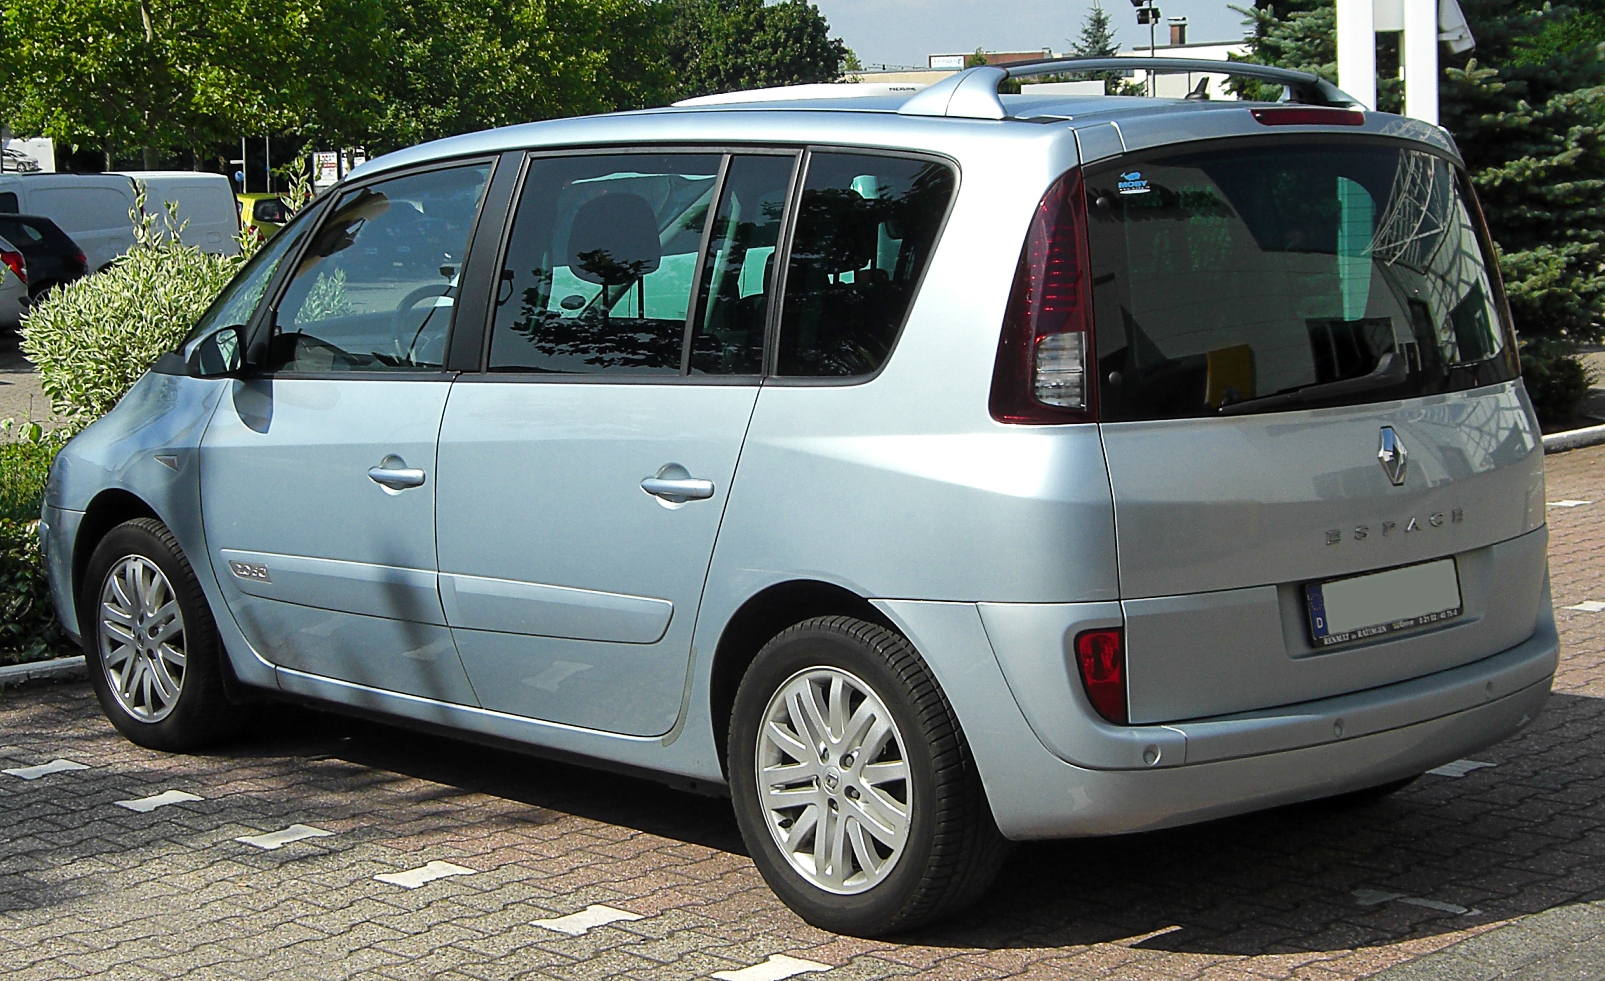 file renault espace iv 2 0 dci facelift rear wikimedia commons. Black Bedroom Furniture Sets. Home Design Ideas